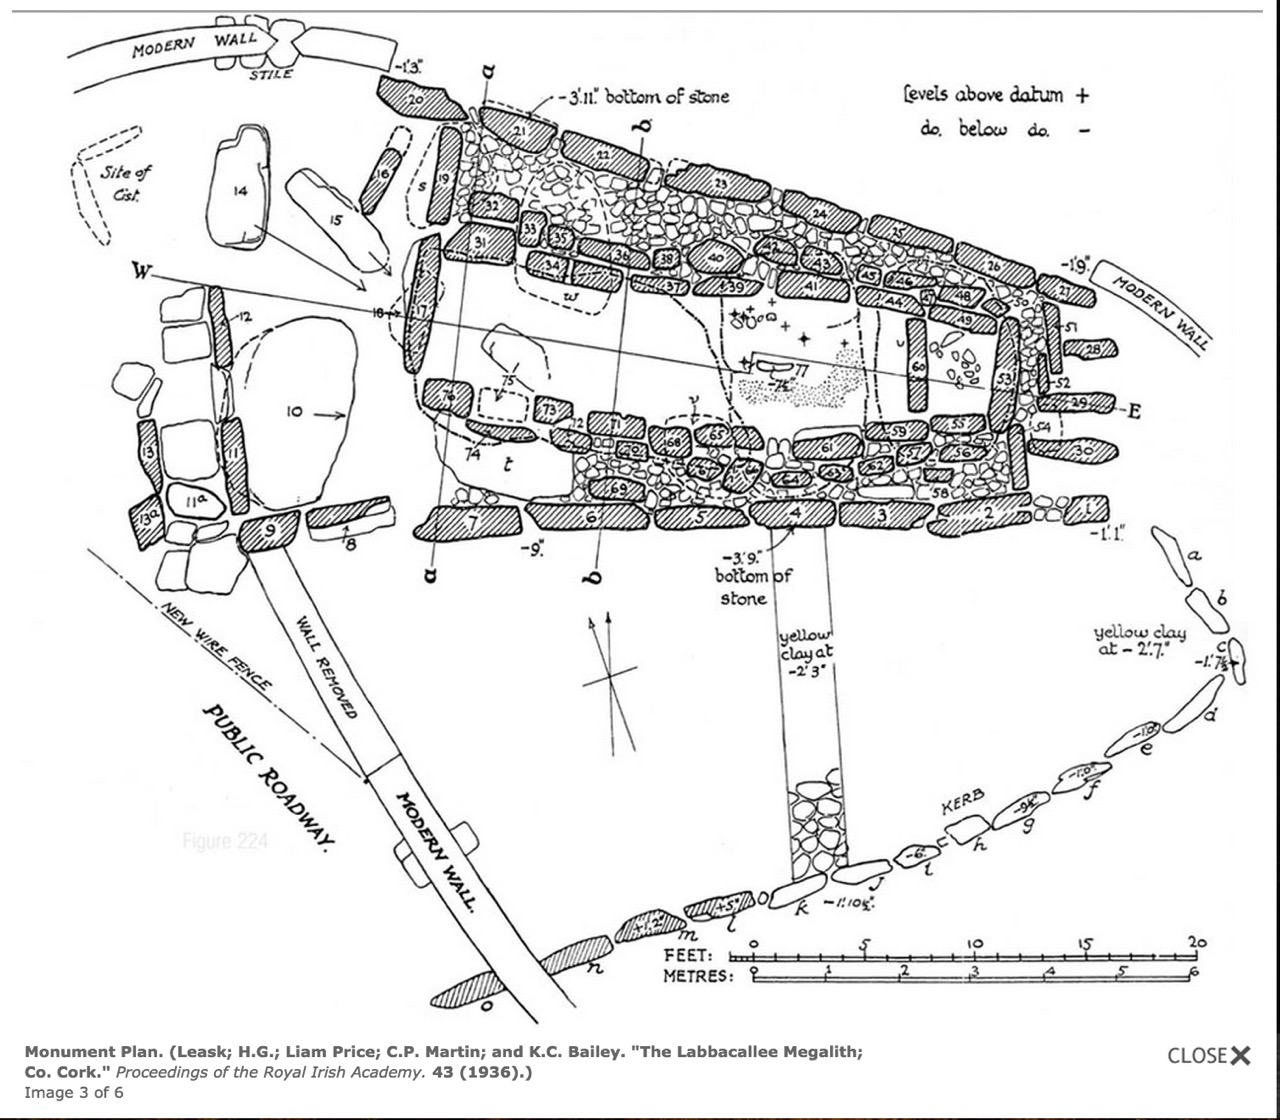 Pottery Court Lake Elsinore Floor Plans: Wedge Tombs: Last Of The Megaliths